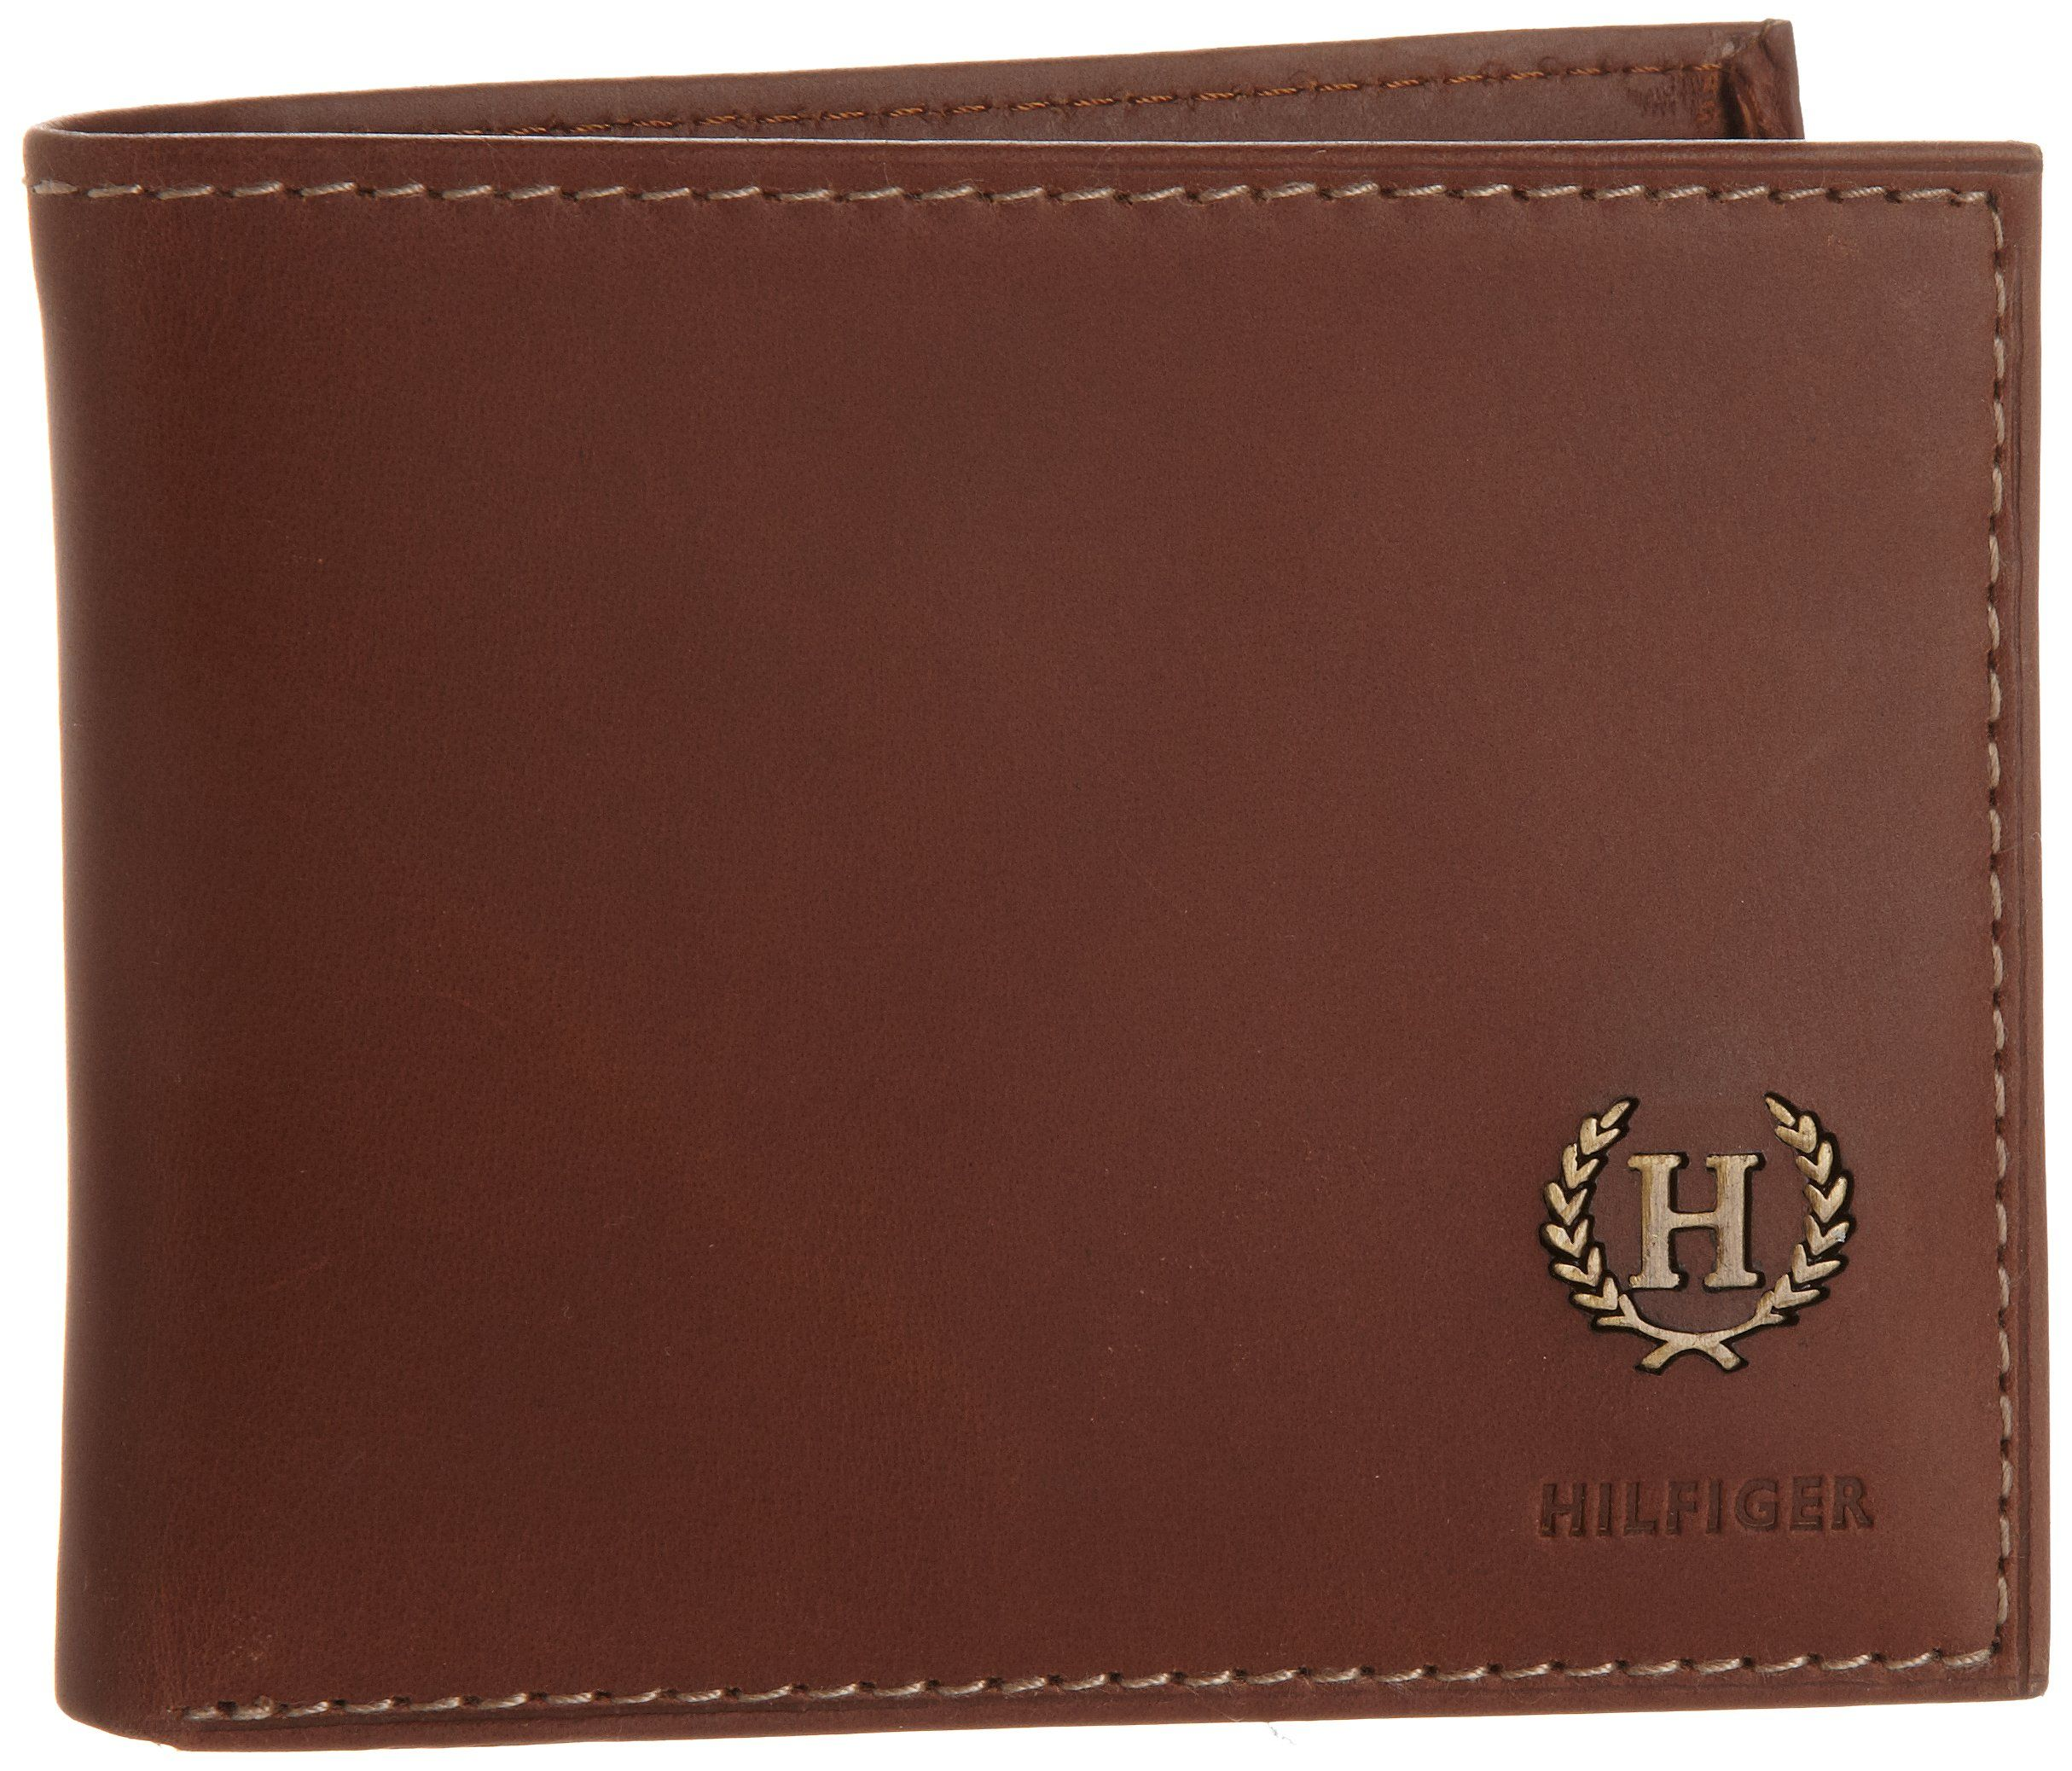 59ddd1a042d Tommy Hilfiger Men's Hove Passcase Billfold, Tan, One Size | Cosas ...